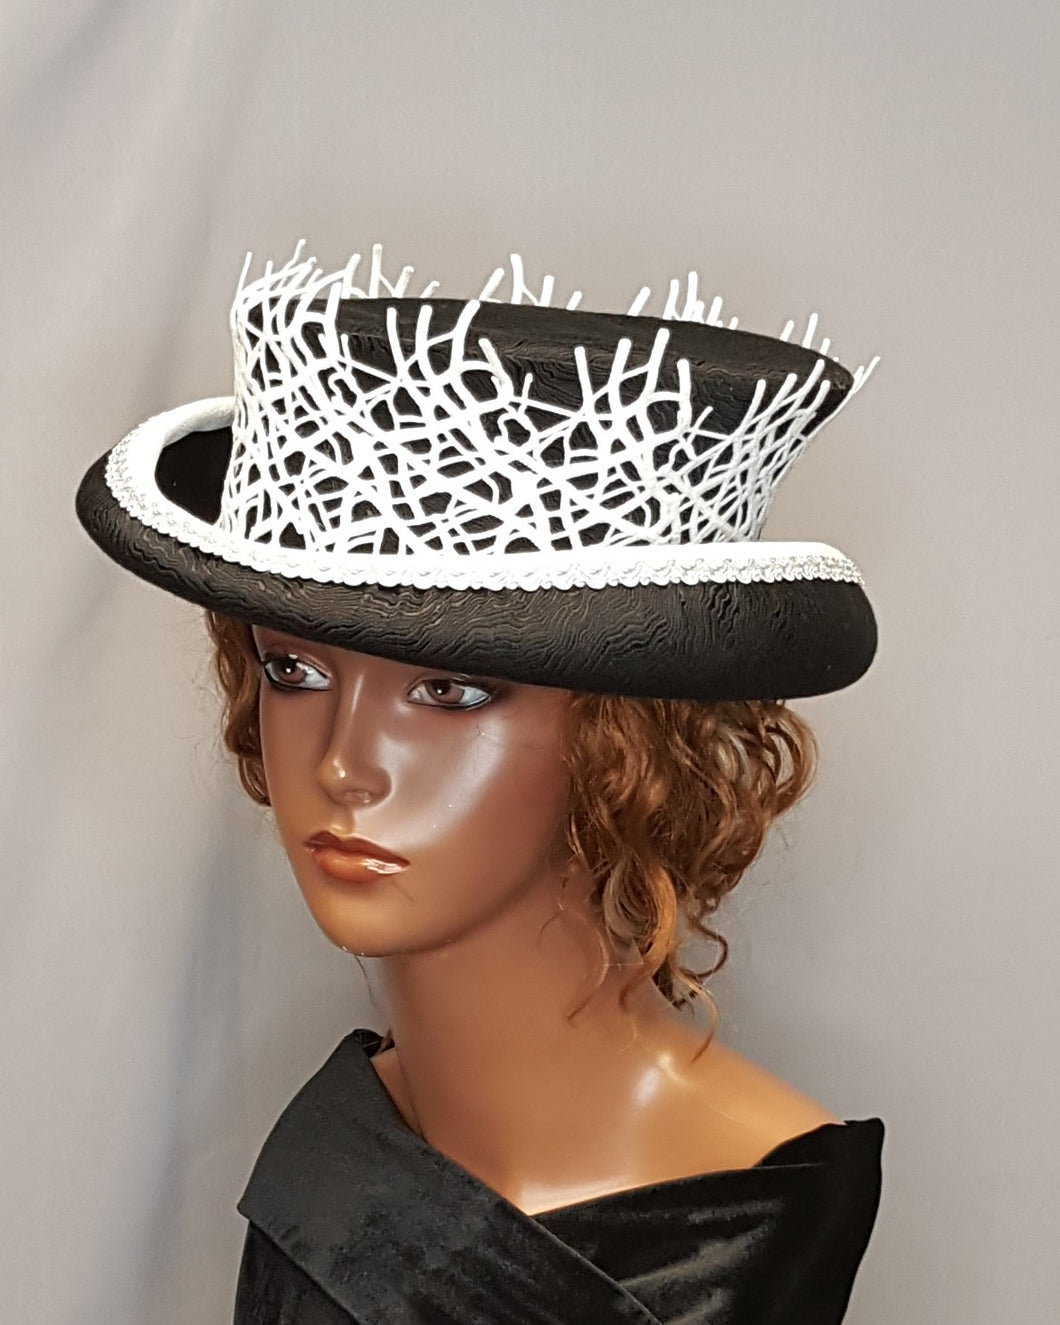 Black and White women's  Top Hat